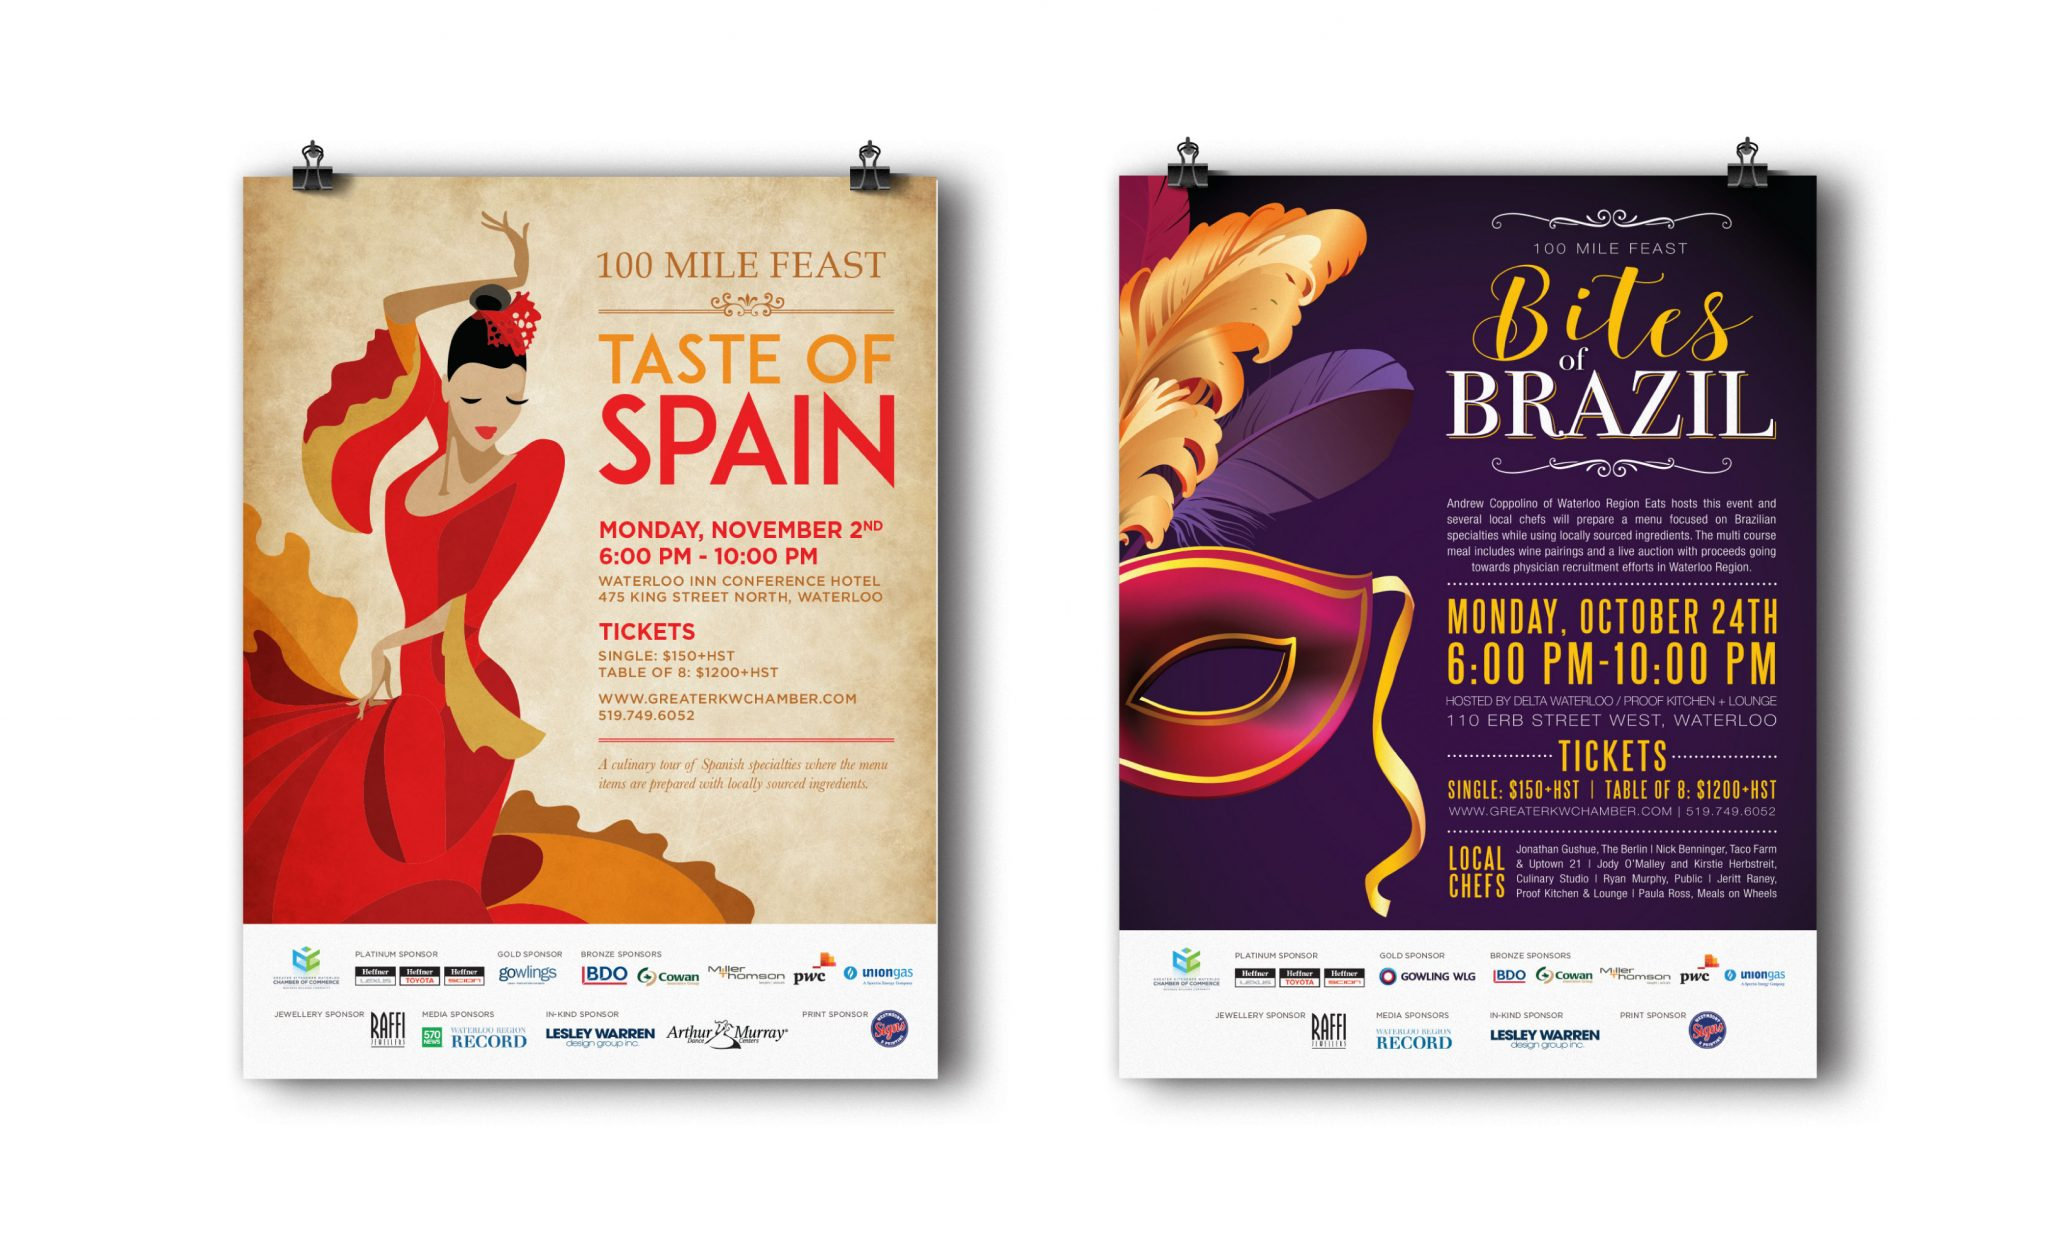 100 Mile Feast Taste of Spain and Bites of Brazil posters.